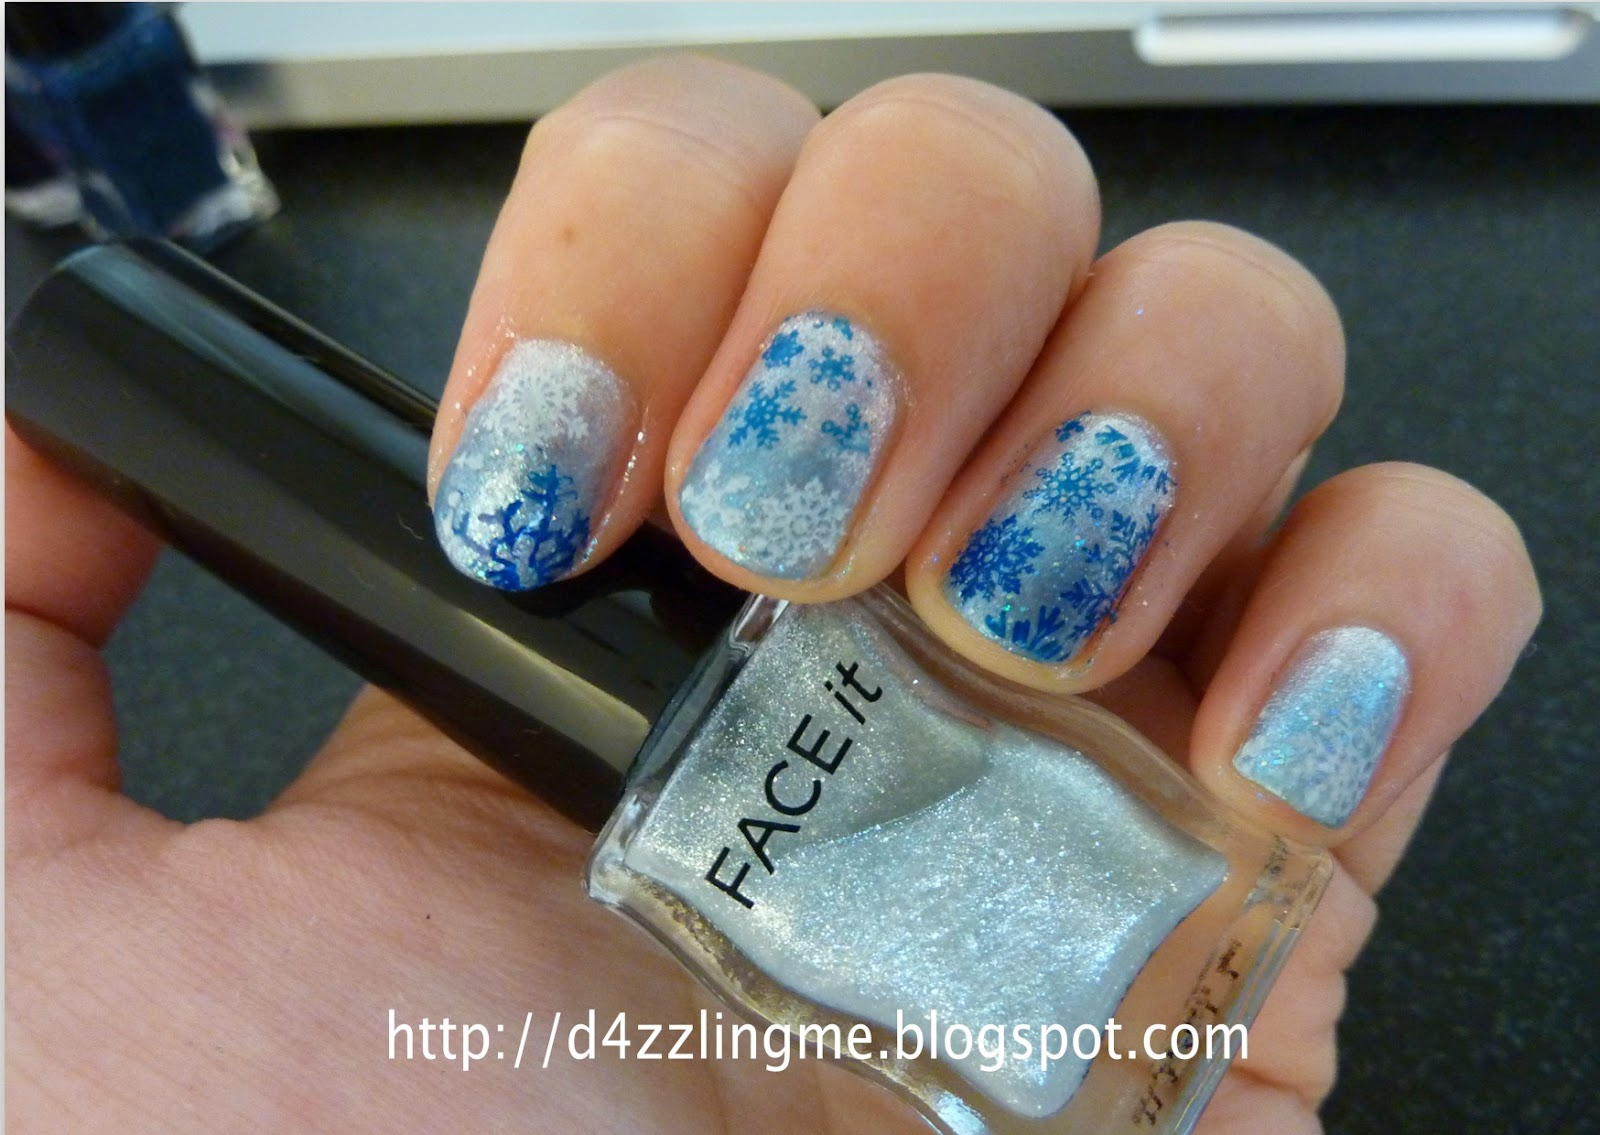 D4zzling Me: Frozen Inspired Nails